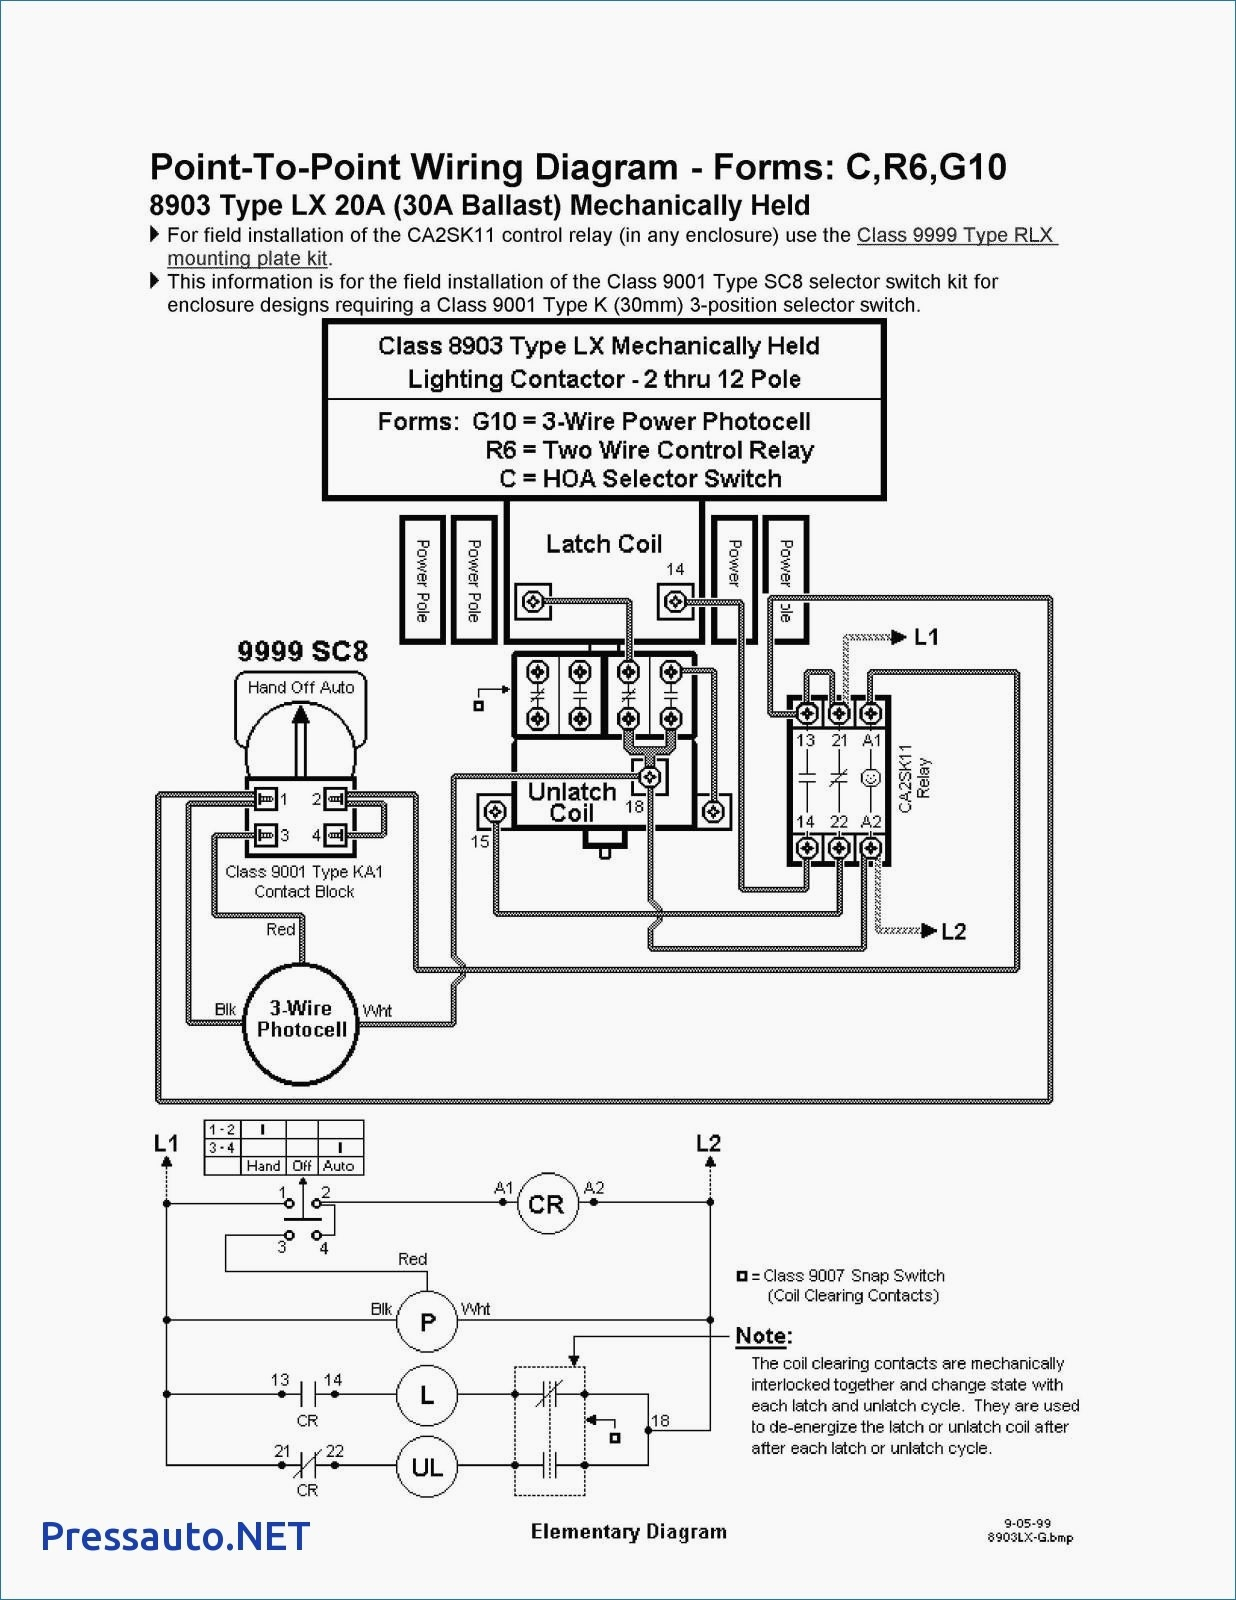 square d 8903 lighting contactor wiring diagram Download-Square D 8903 Lighting Contactor Wiring Diagram Collection square d contactor wiring diagram square d 11-e